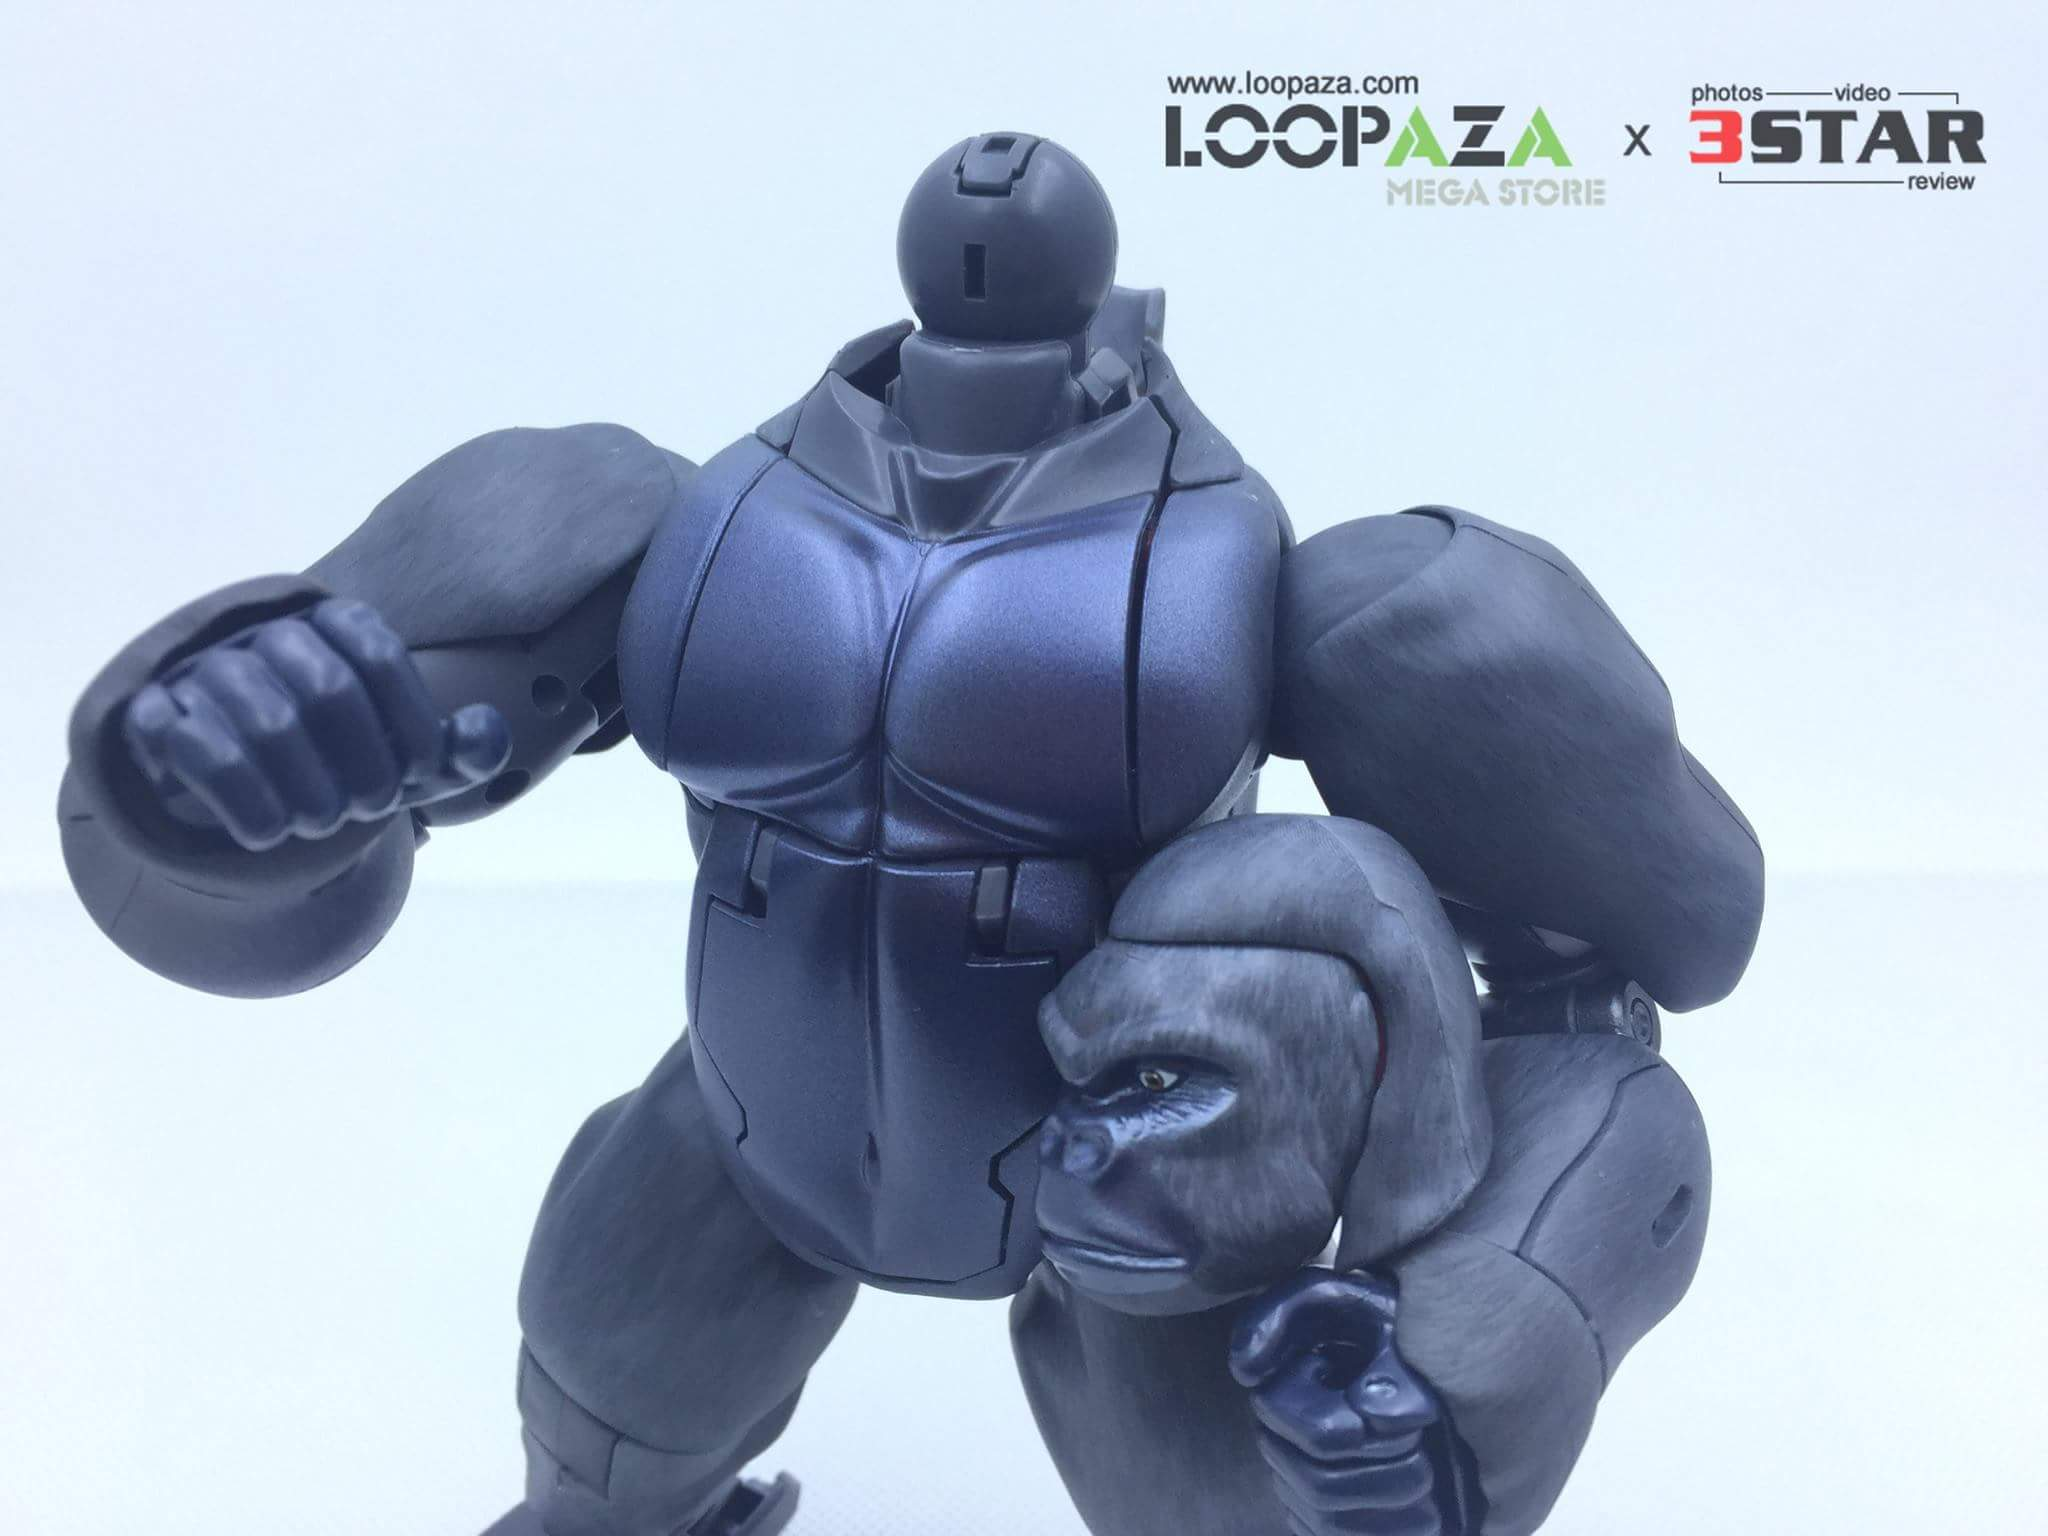 [Masterpiece] MP-32, MP-38 Optimus Primal et MP-38+ Burning Convoy (Beast Wars) - Page 3 UrzSQ4Ms